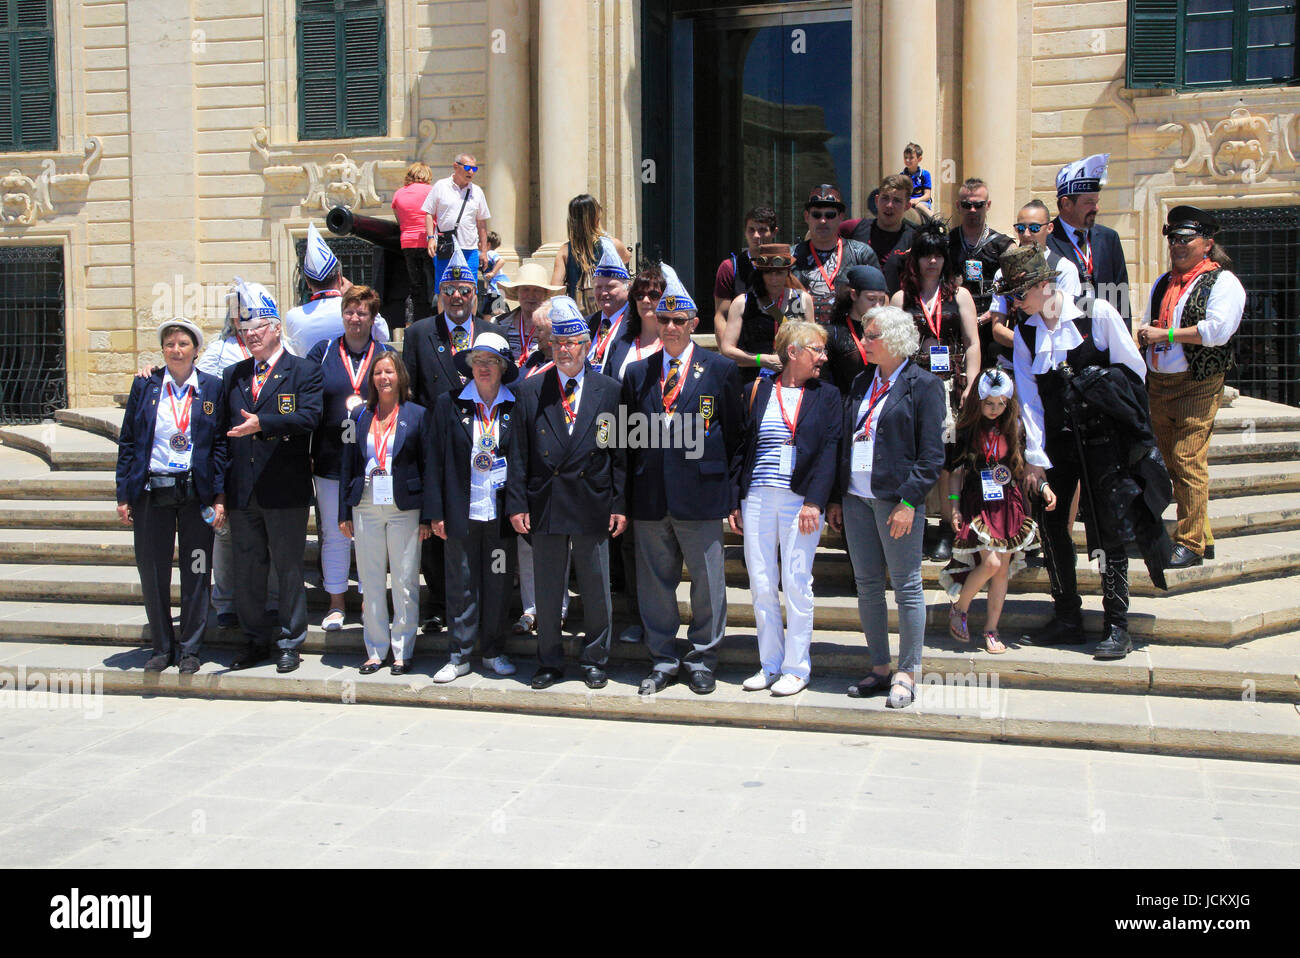 Tour group photo of carnival organisers on steps of Auberge de Castille palace in city centre of Valletta, Malta Stock Photo